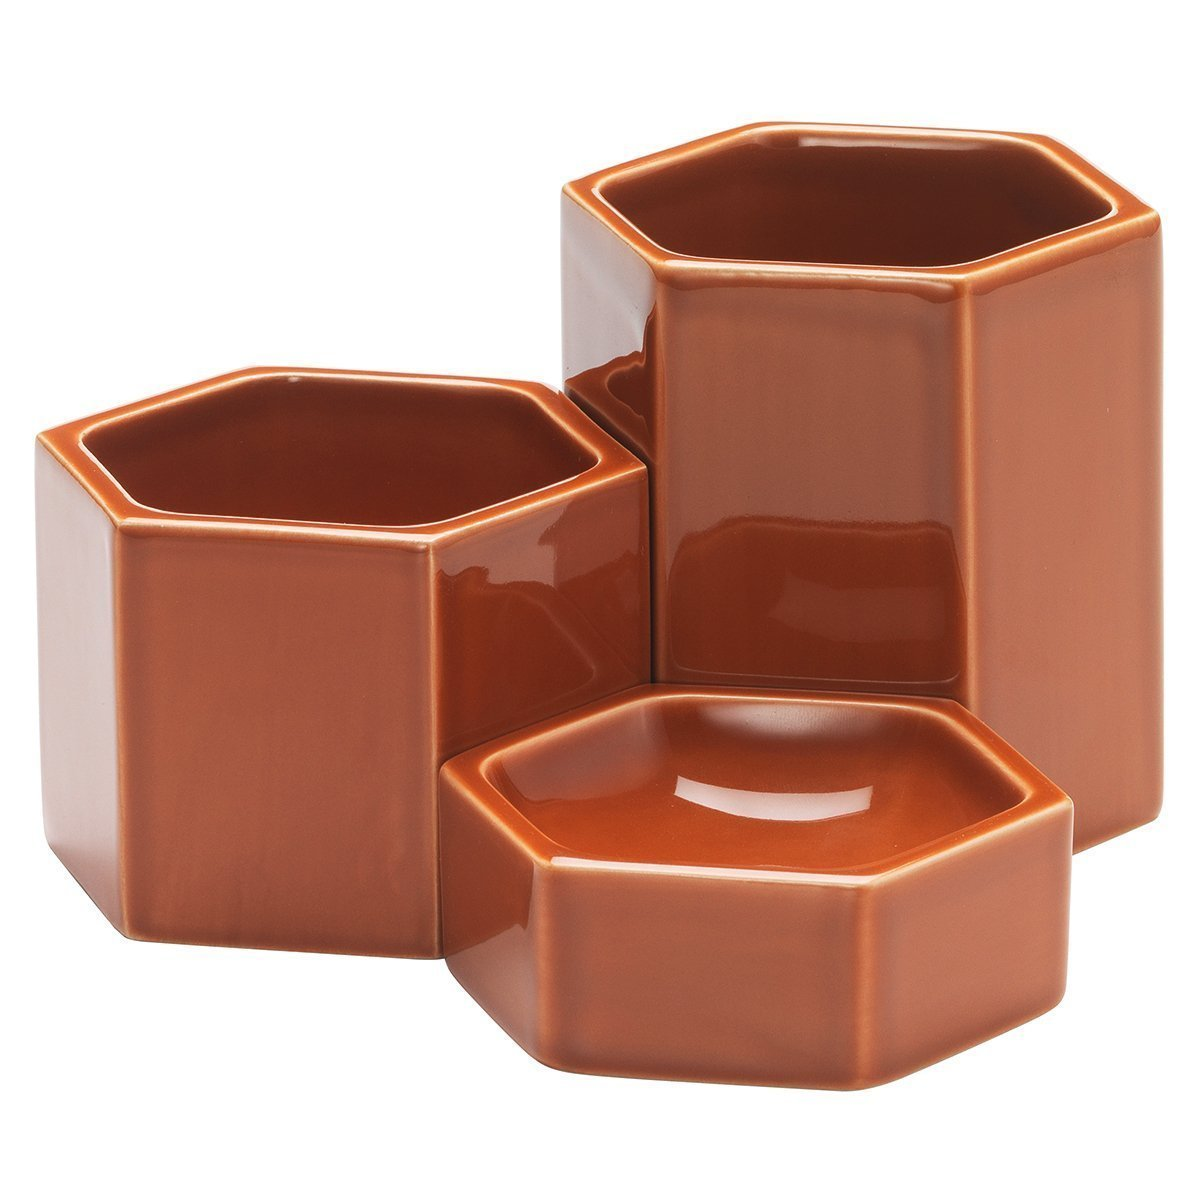 Vitra Hexagonal Containers - Rusty Orange